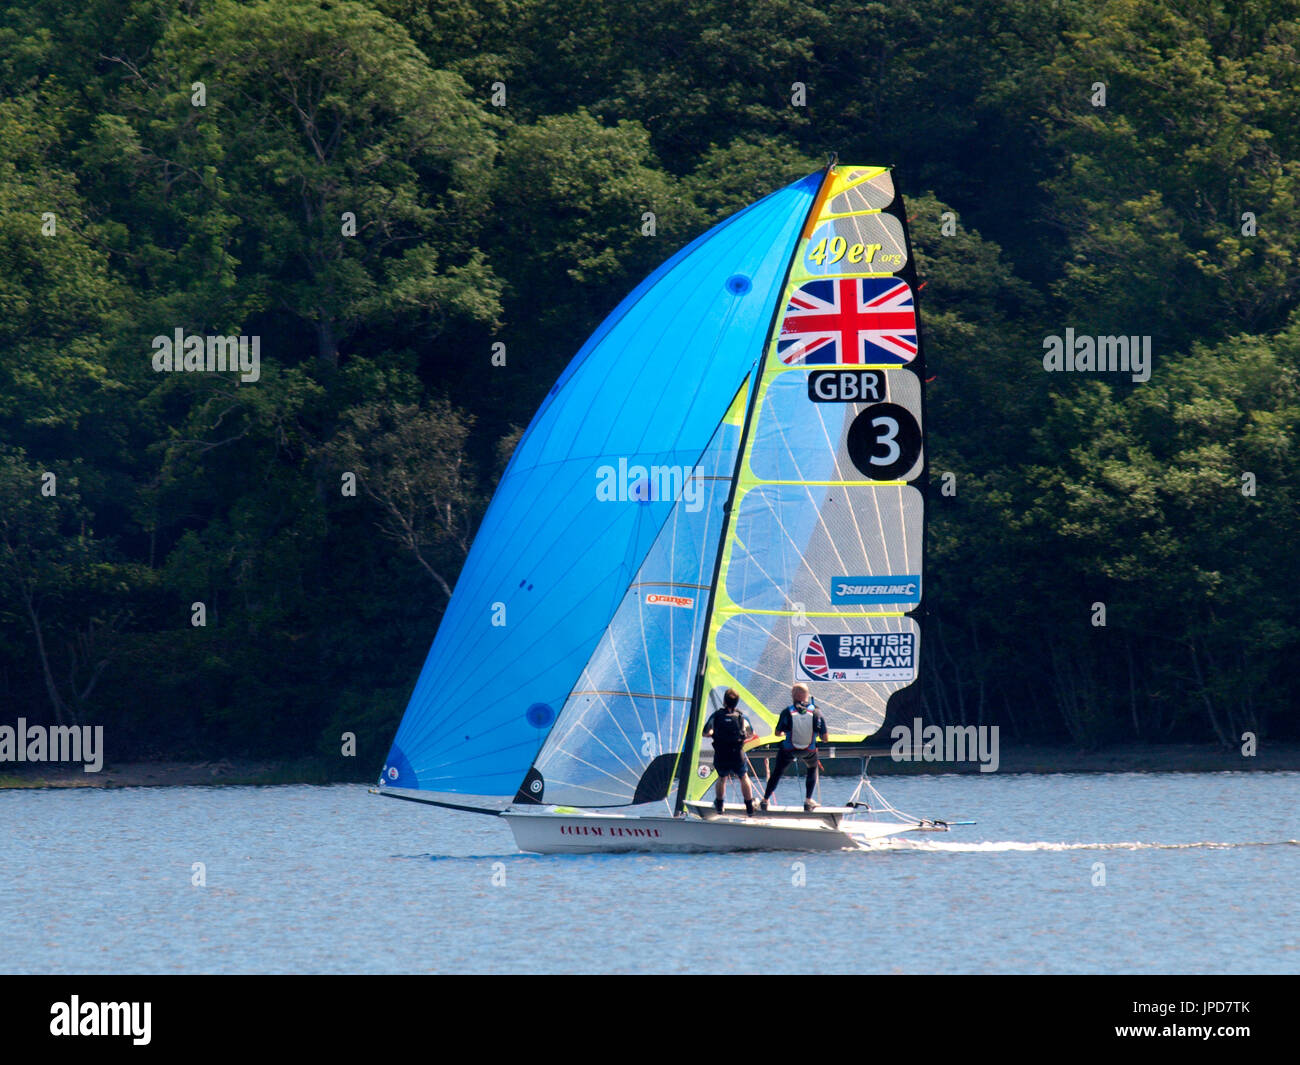 Sport sailors sailing dinghy on Coniston Water, The Lake District, Cumbria, UK - Stock Image